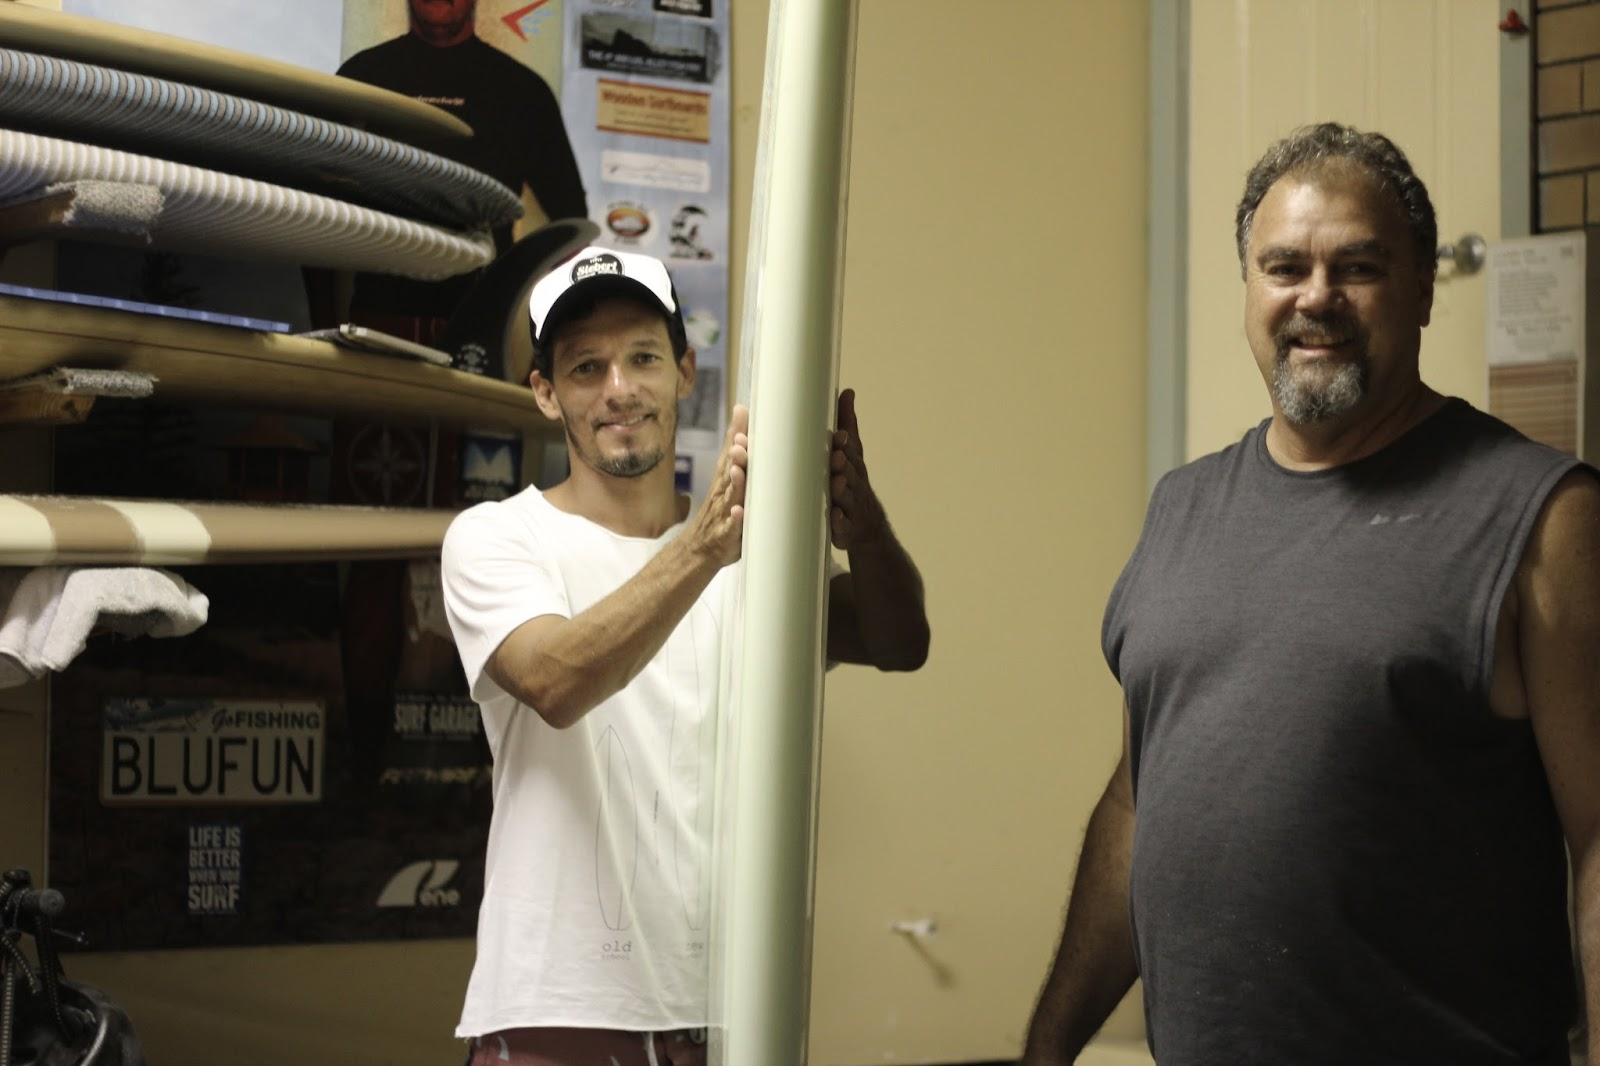 20-03-2016-australia-siebert-surfboards-08